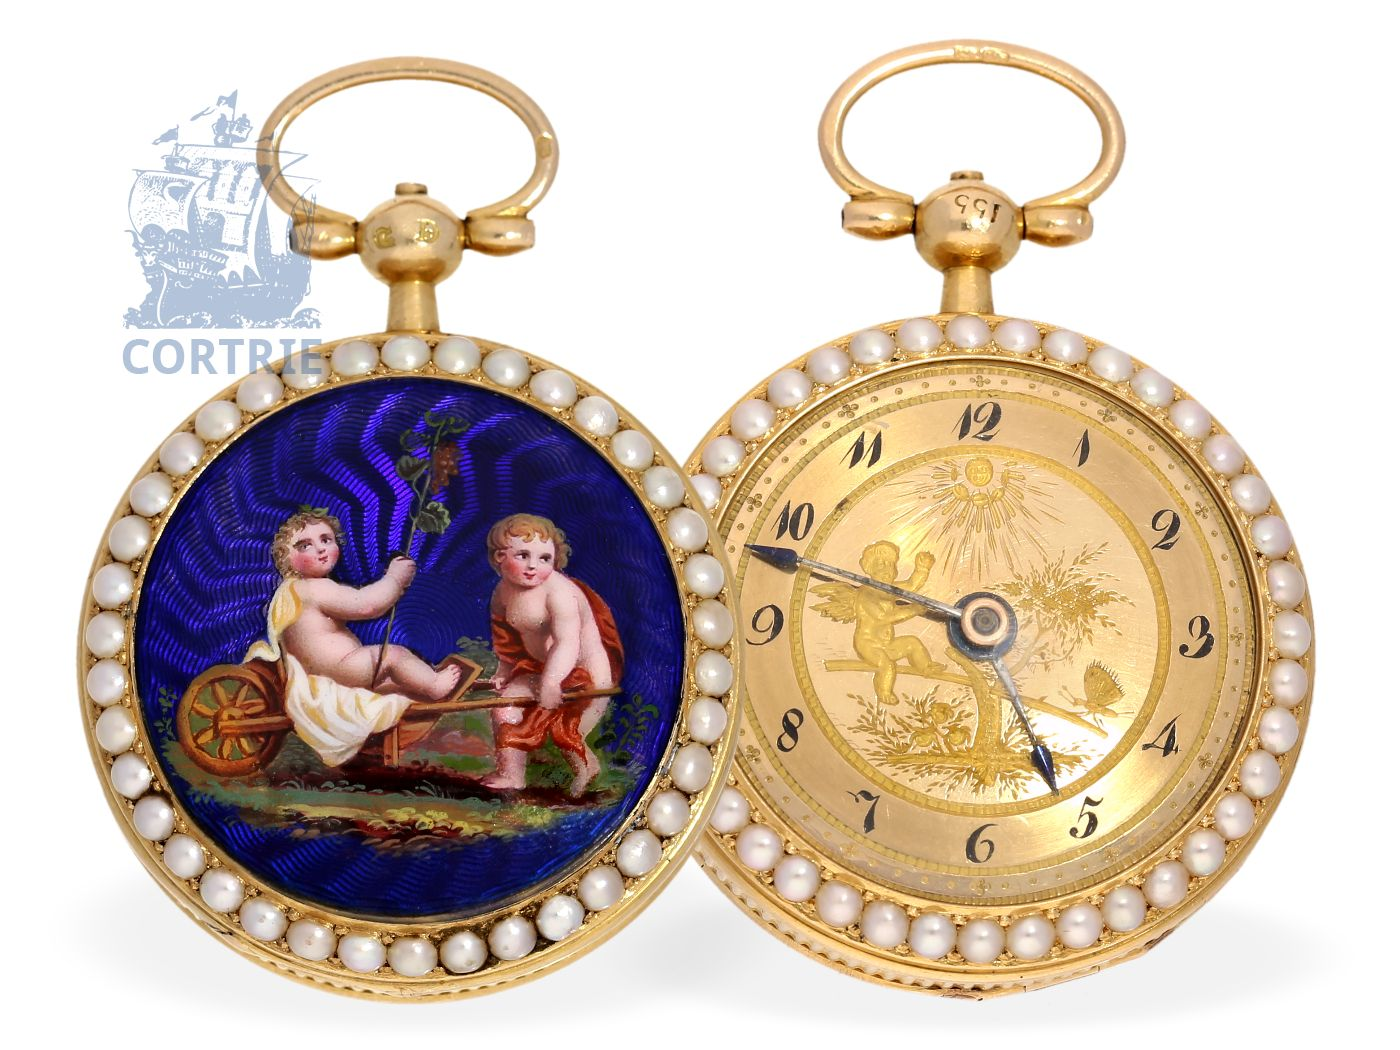 Pocket watch: rarity, gold/enamel miniature pocket watch with original pearls and music movement, Joseph Revel Paris No.2885-